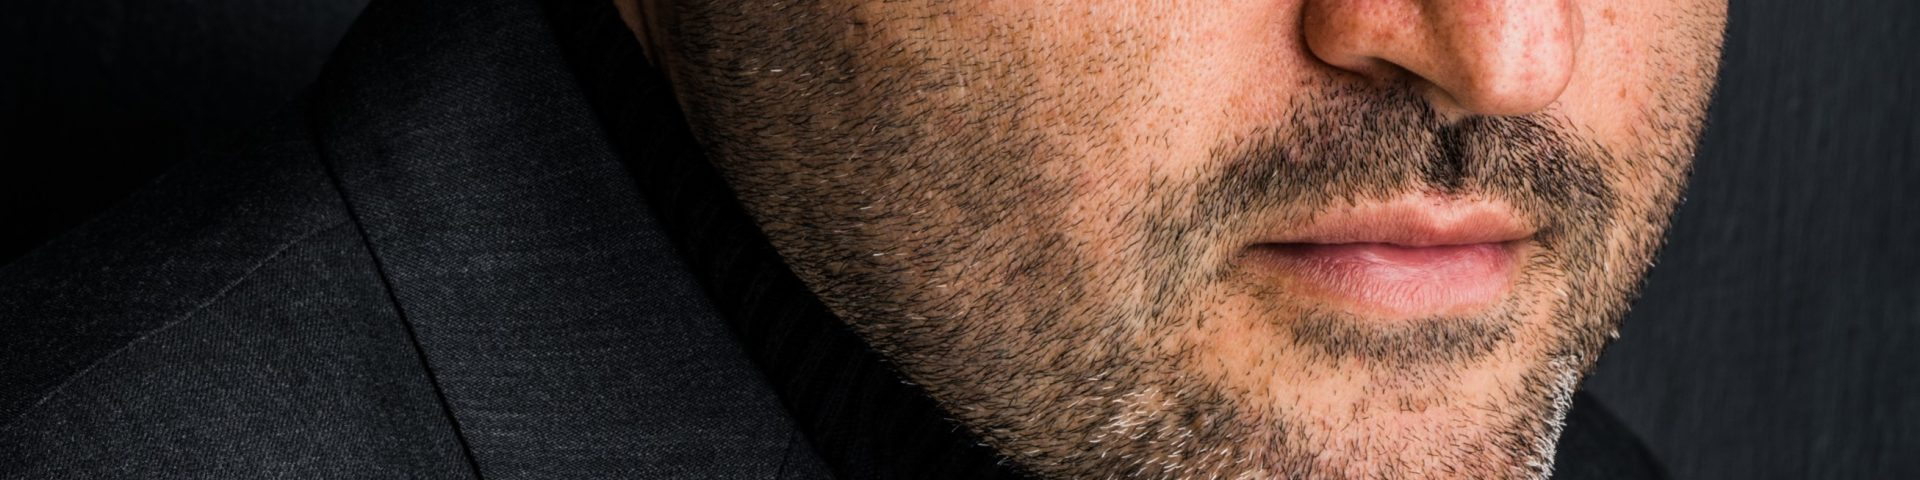 Nick Gracer facts 1920x480